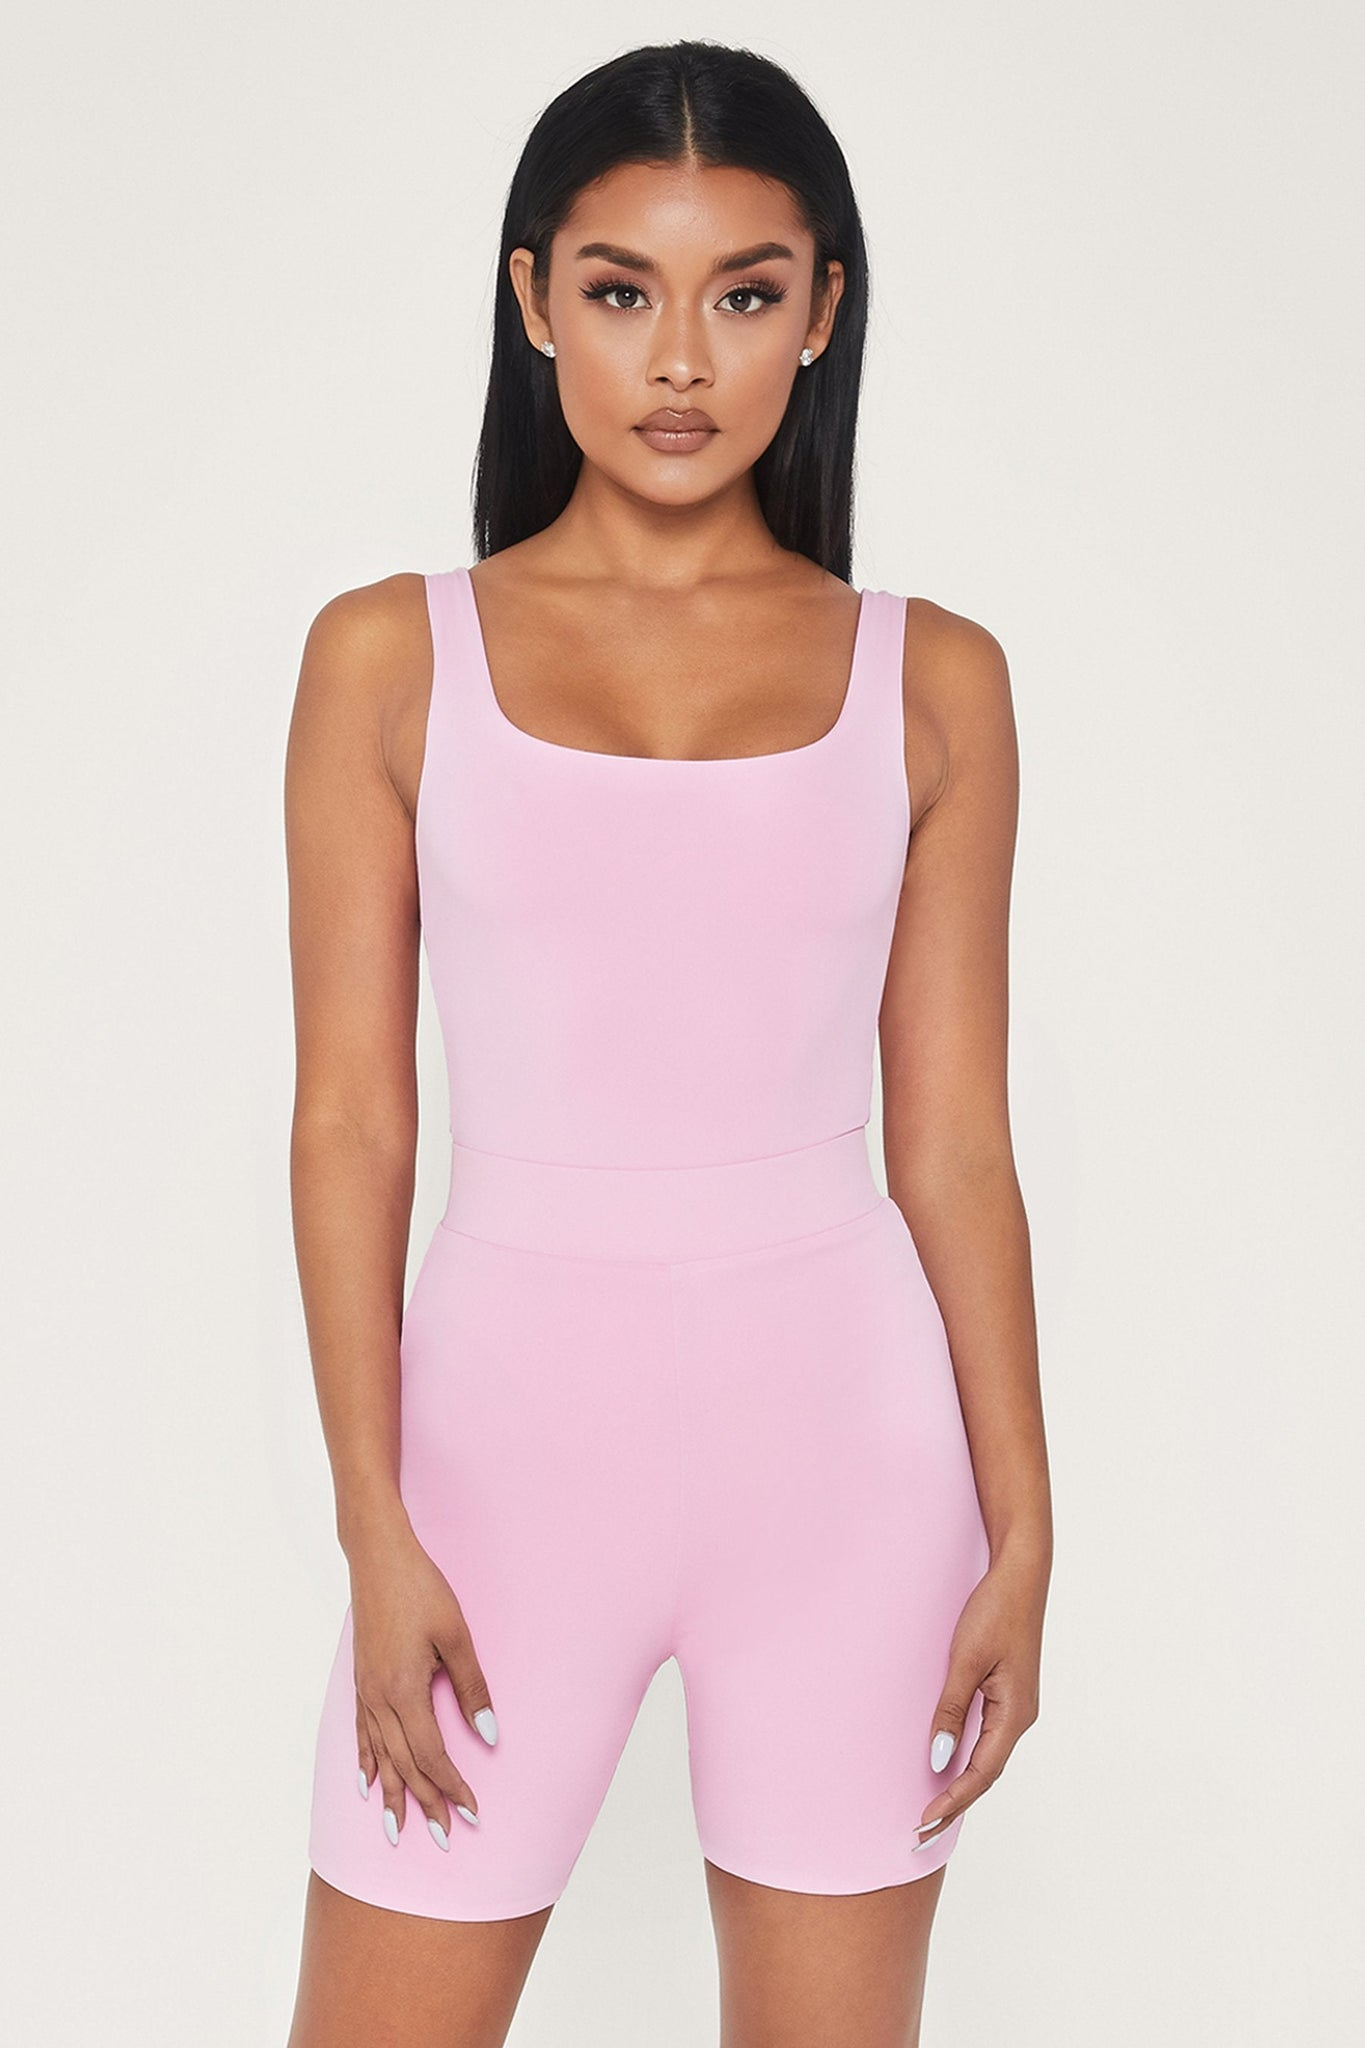 Jaelyn Thick Strap Square Neck Bodysuit - Pink - MESHKI